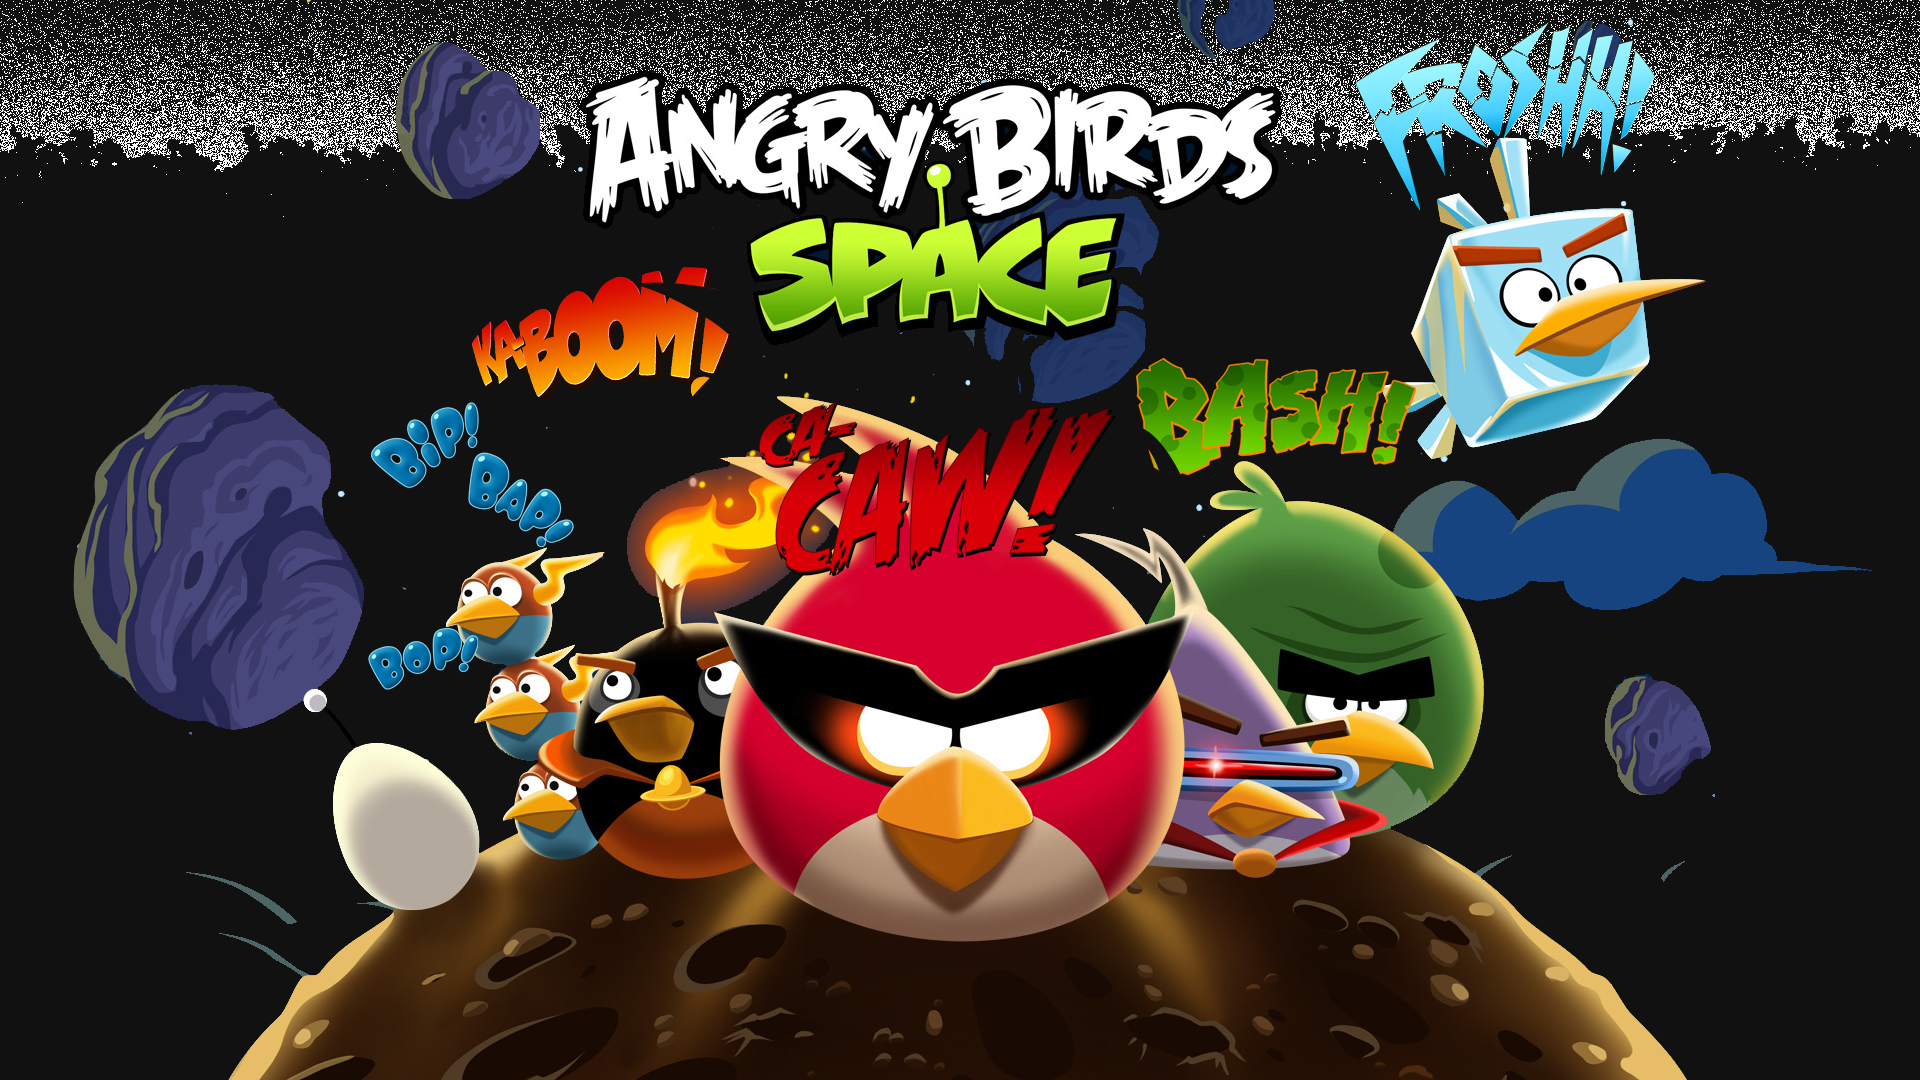 8 Angry Birds: Space HD Wallpapers